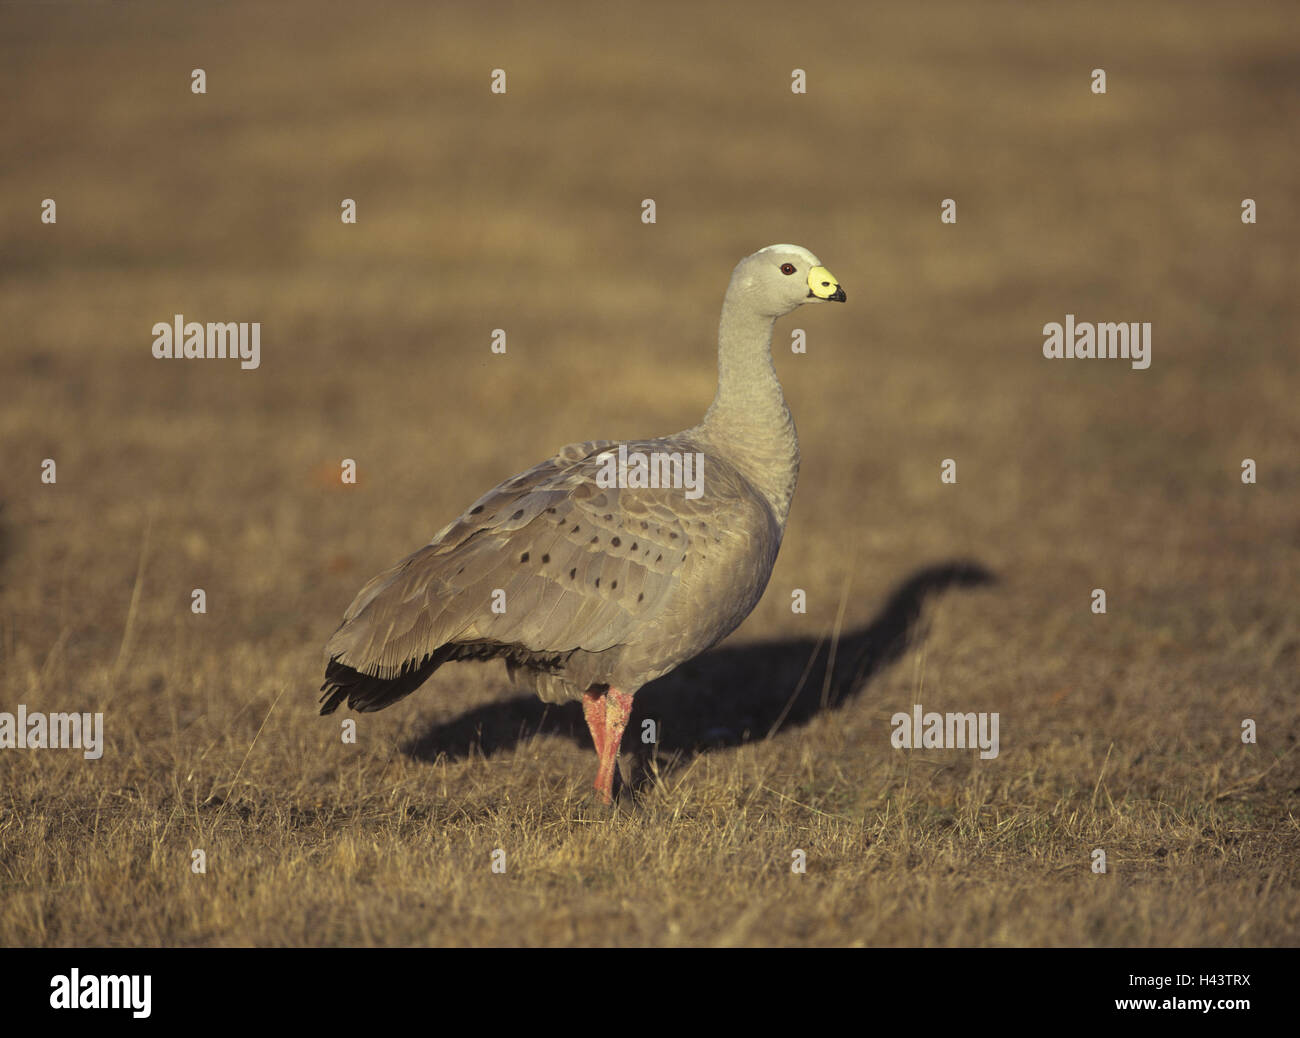 Australia, meadow, poultry goose, Cereopsis novaehollandiae, side view, Wildlife, animal world, animal, bird, goose, - Stock Image